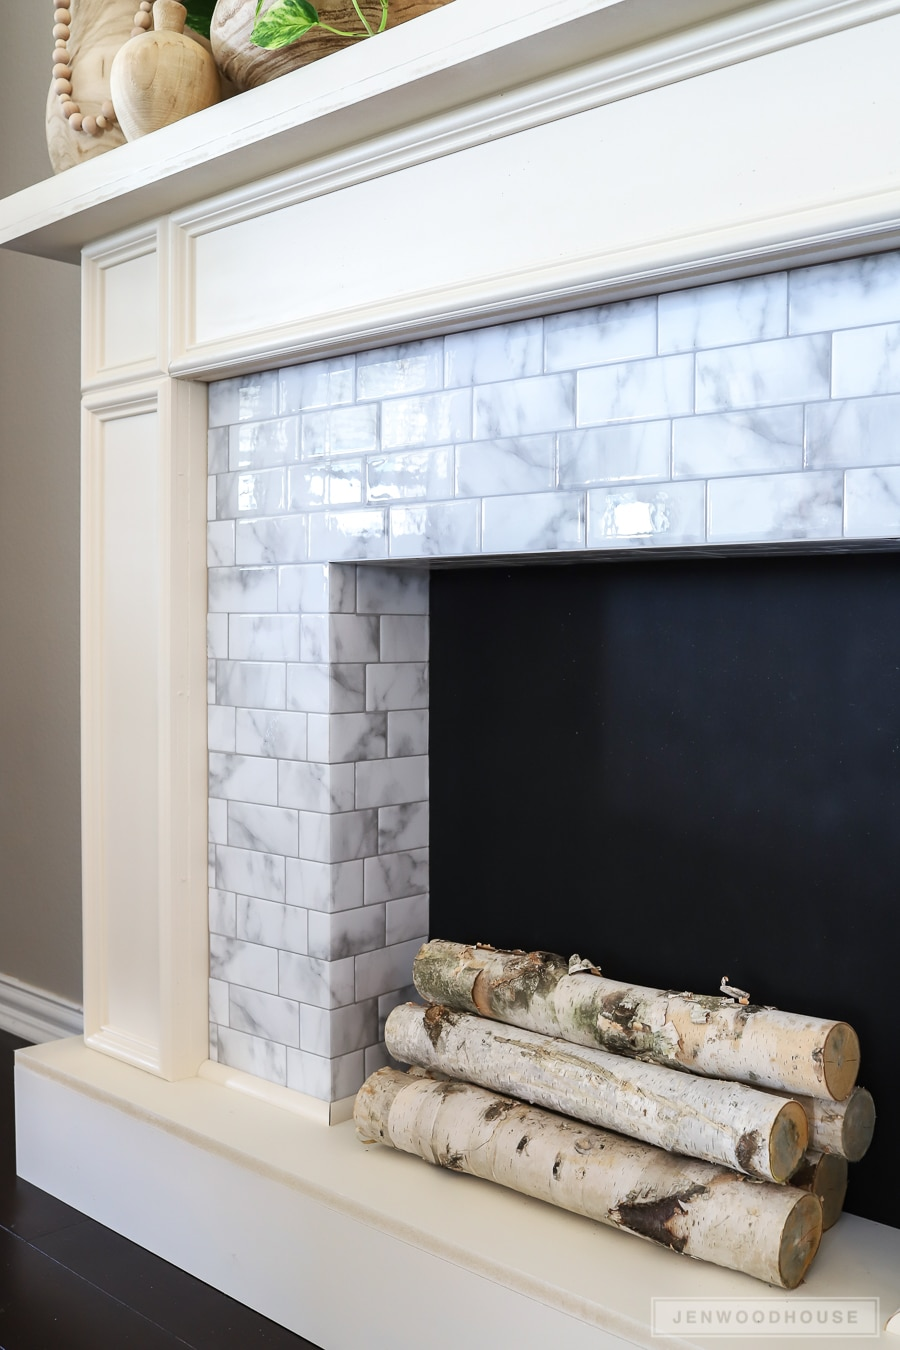 Favorite How To Make A DIY Faux Fireplace Featuring Smart Tiles Adhesive Tiles NB53